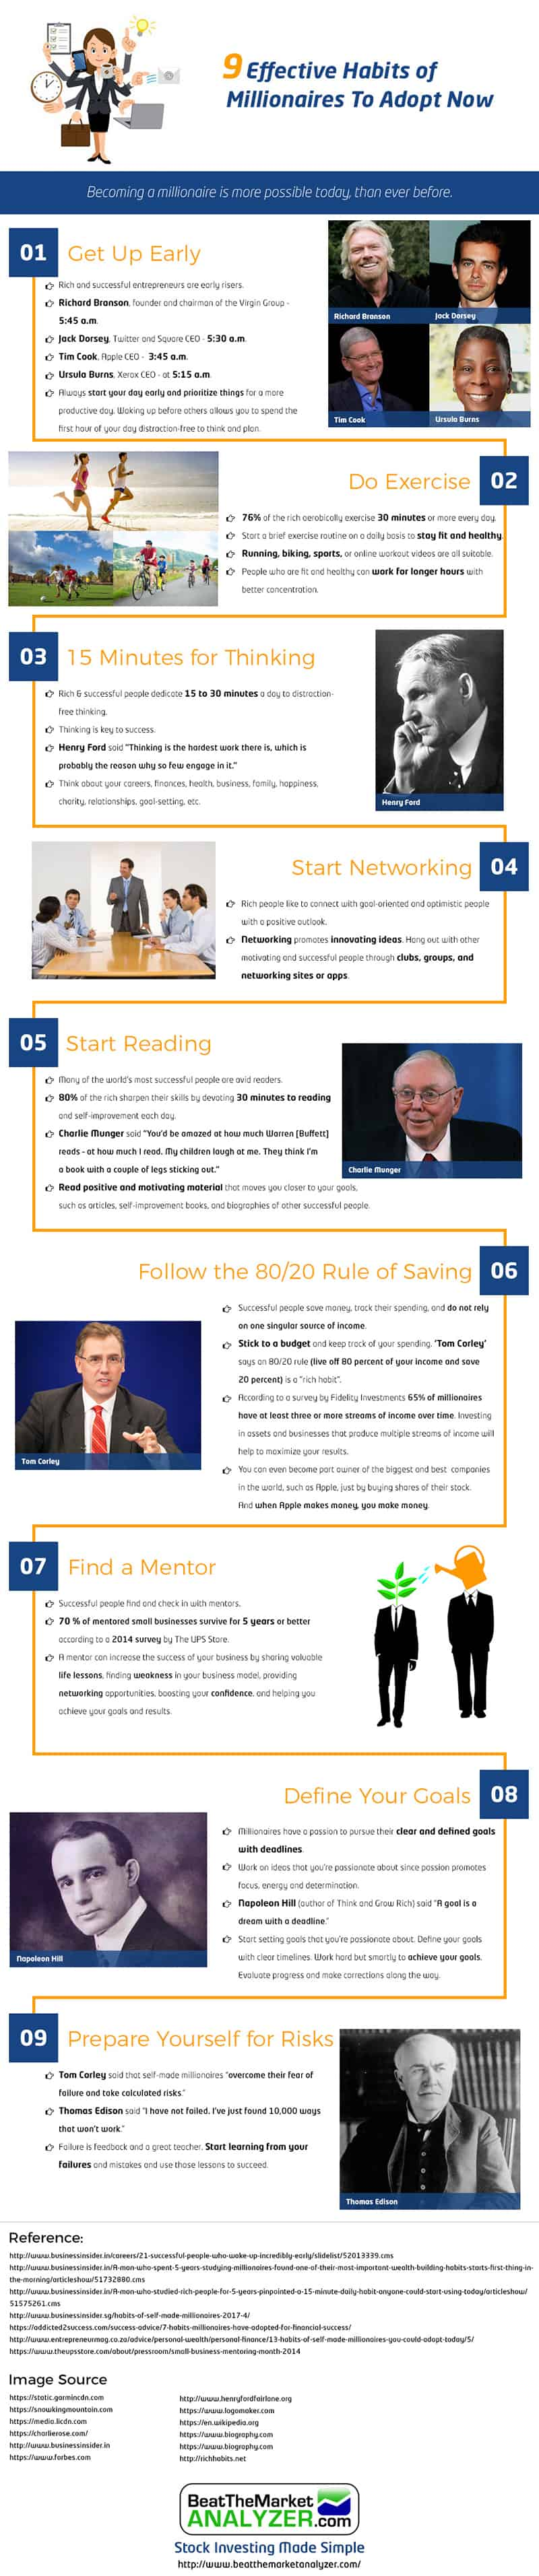 9 Effective Habits of Millionaires You Need to Adopt – Infographic